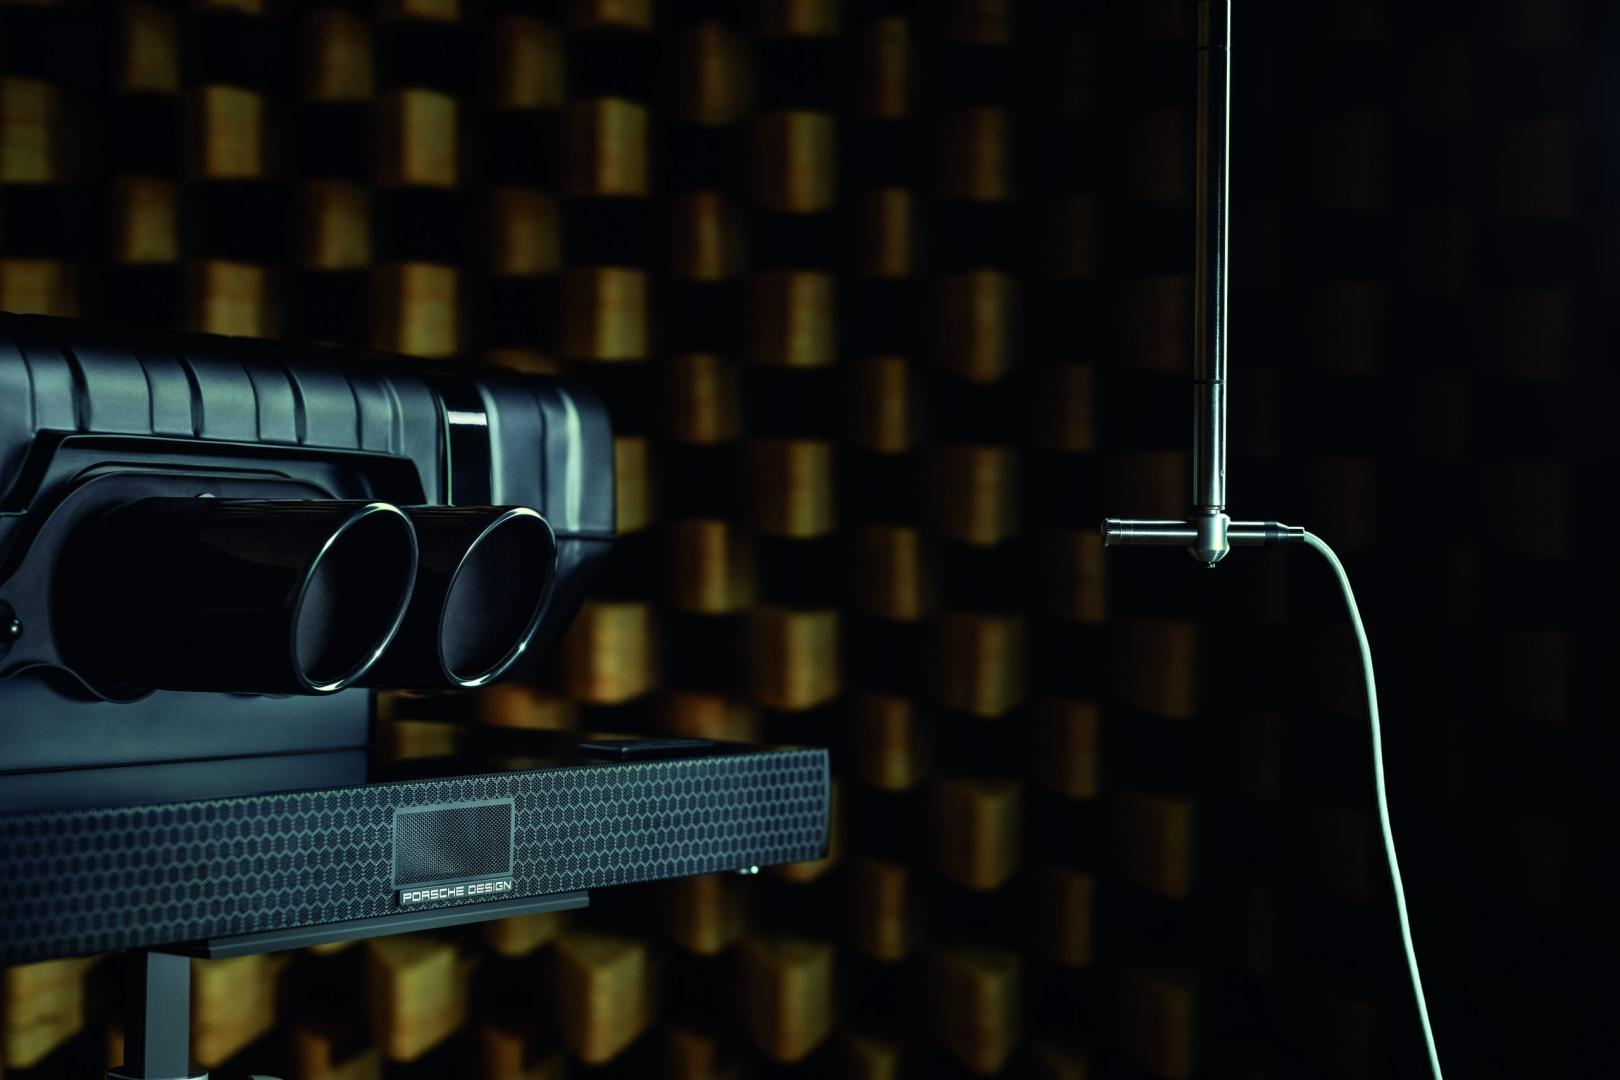 Porsche Design Soundbar Black Edition